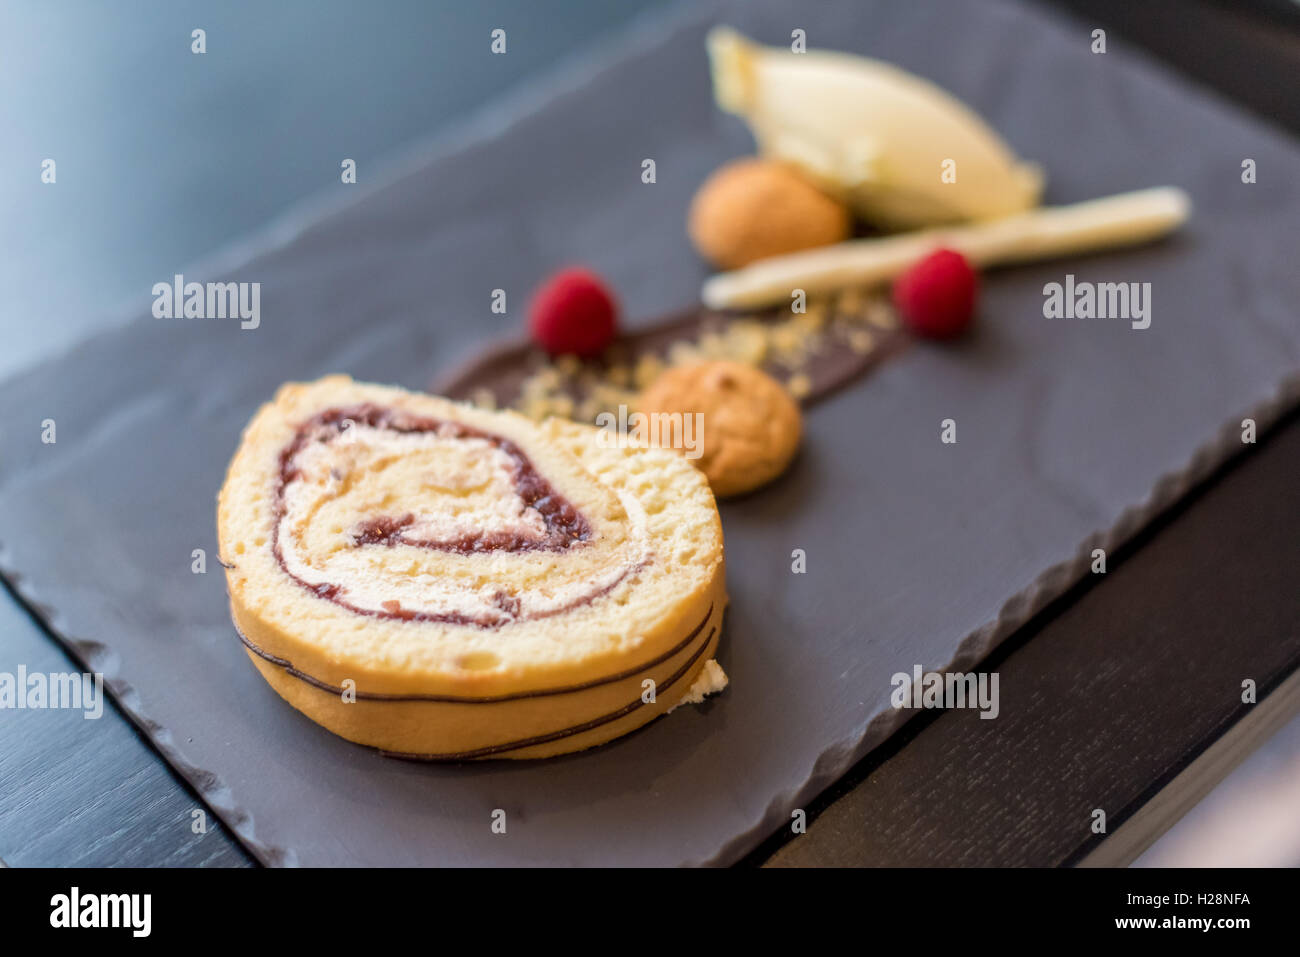 A Swiss roll sponge dessert with ice cream on a slate backdrop - Stock Image